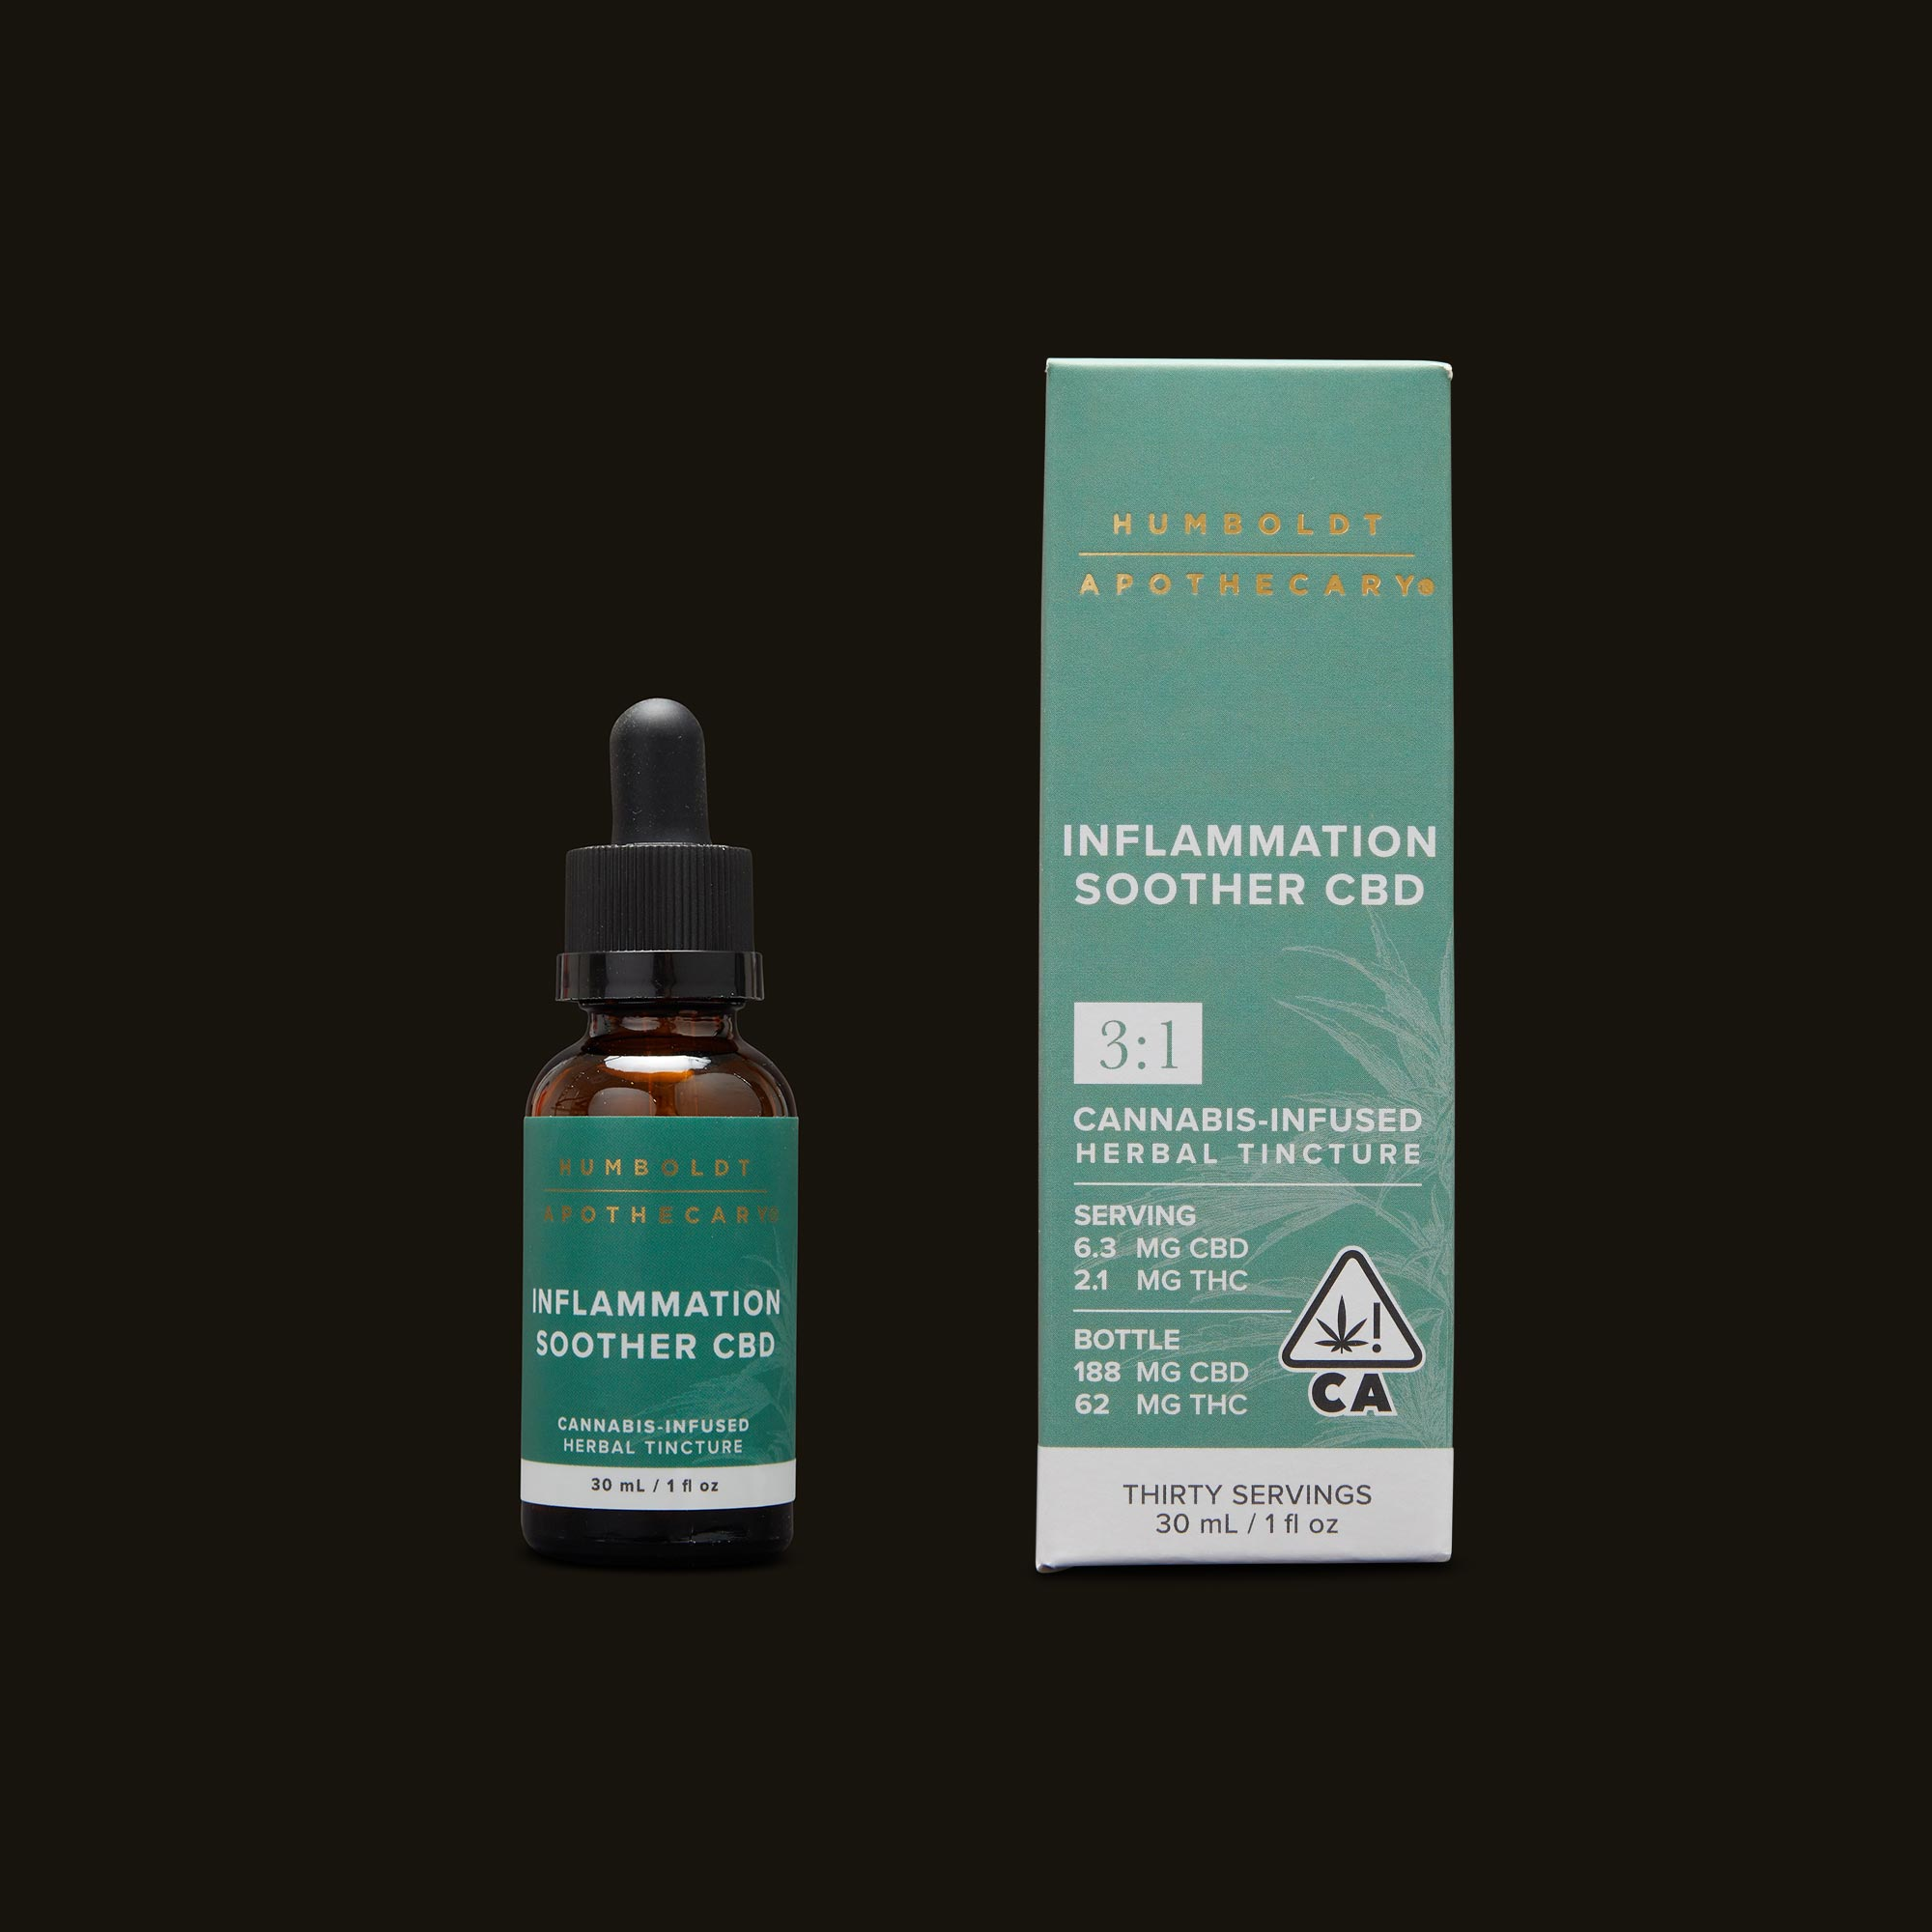 Humboldt Apothecary Inflammation Soother CBD 3:1 Tincture and Packaging